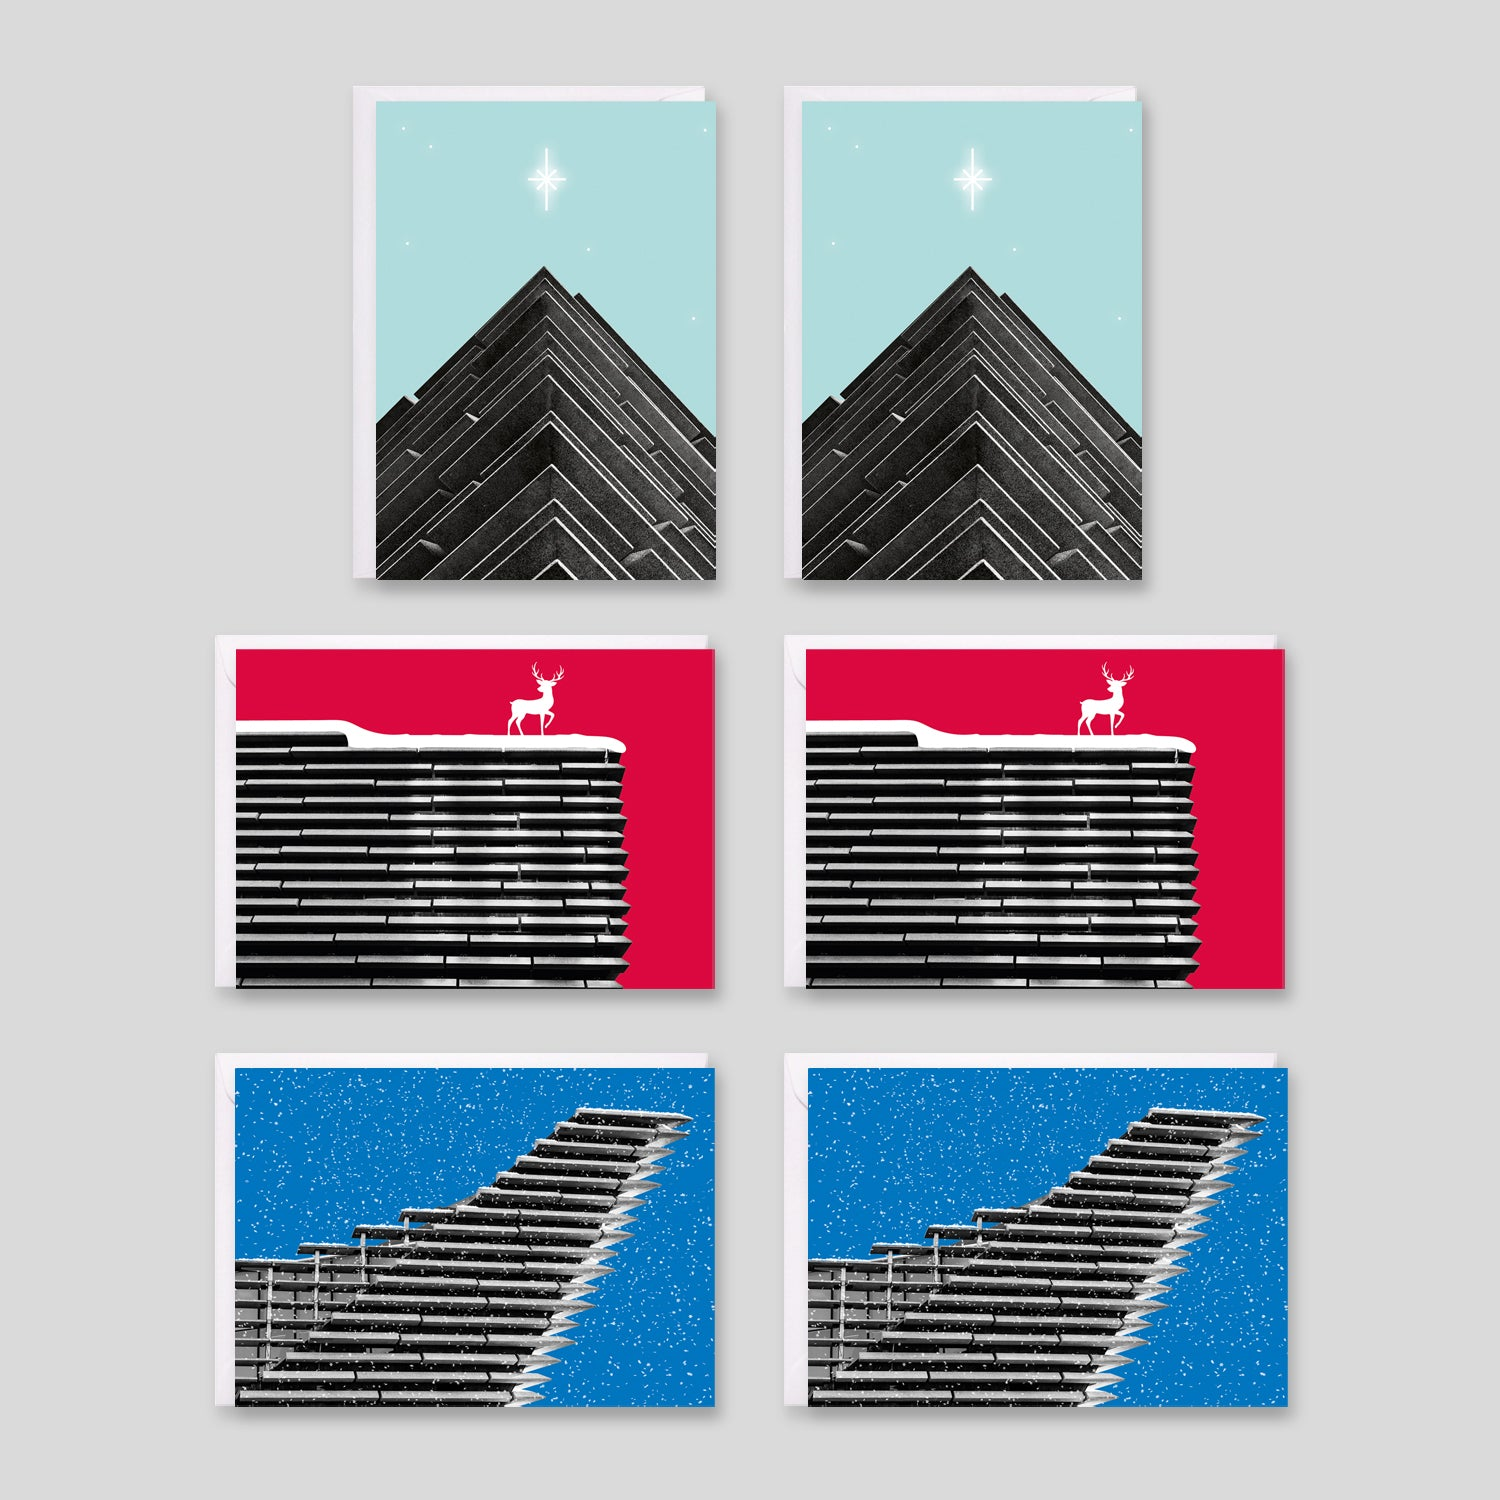 The finished V&A Dundee Christmas card designs